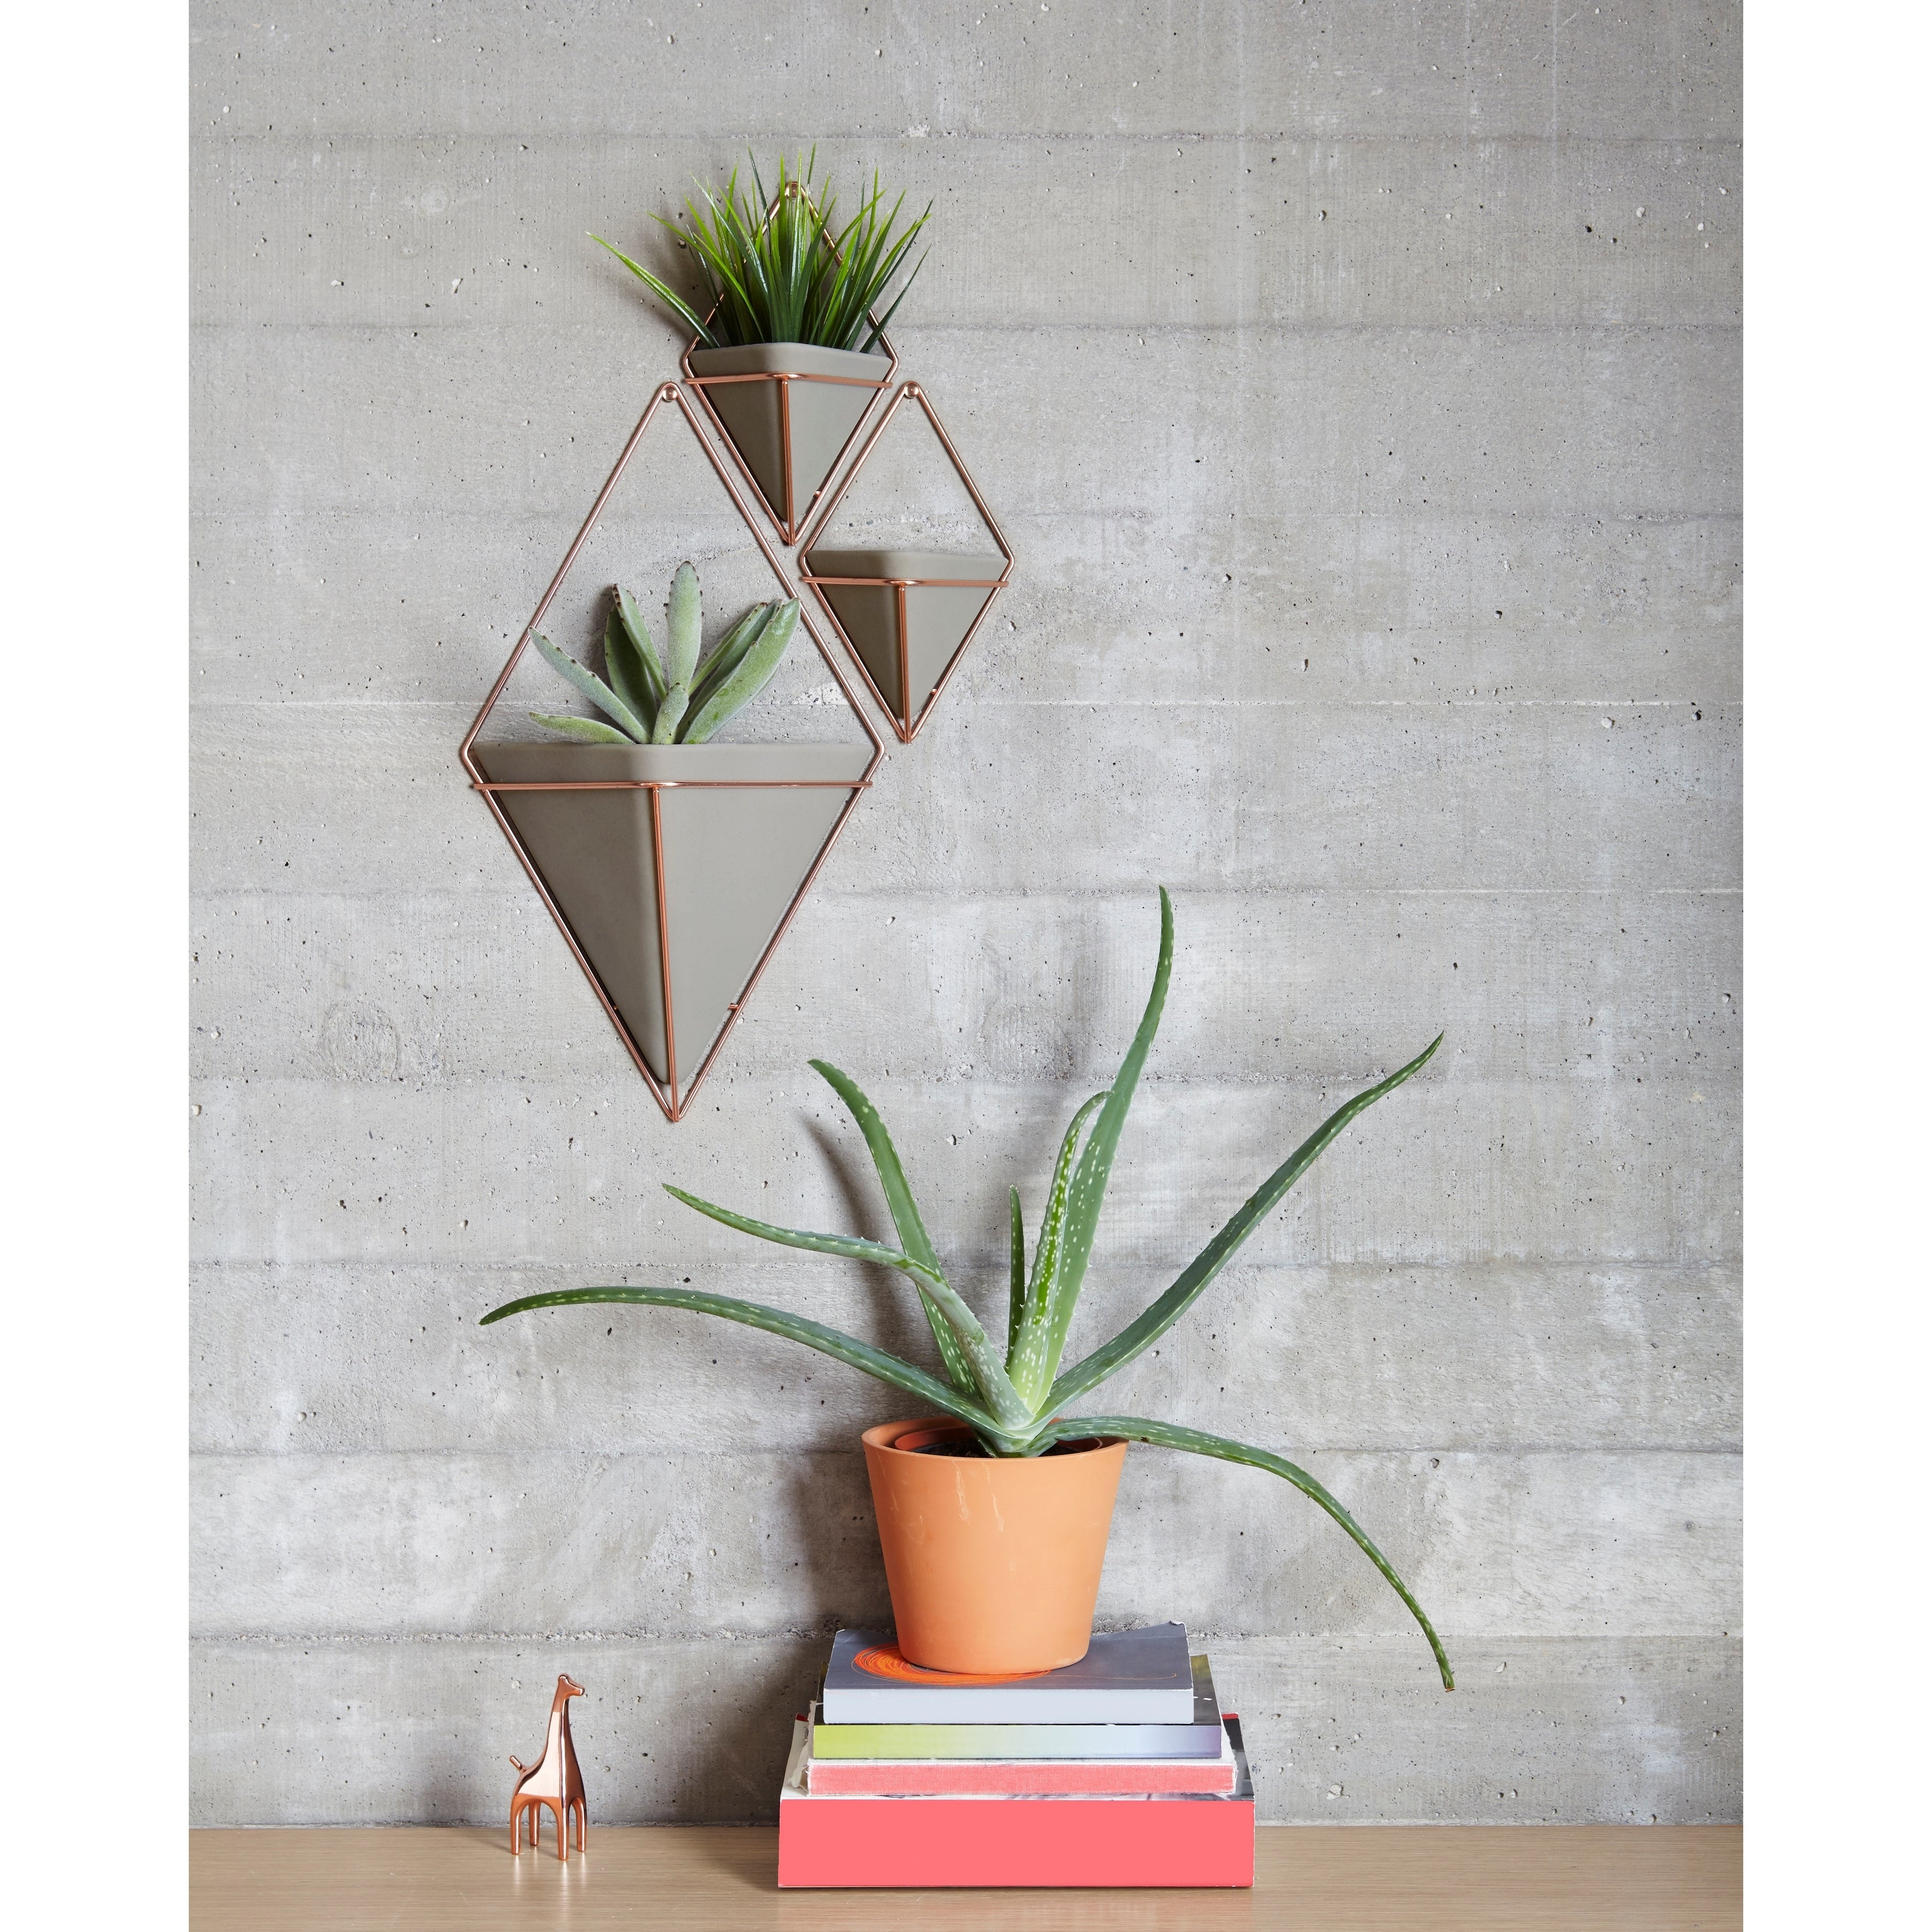 Umbra Trigg Hanging Planter & Wall Decor (Set Of 2) intended for 2 Piece Trigg Wall Decor Sets (Set of 2) (Image 21 of 30)